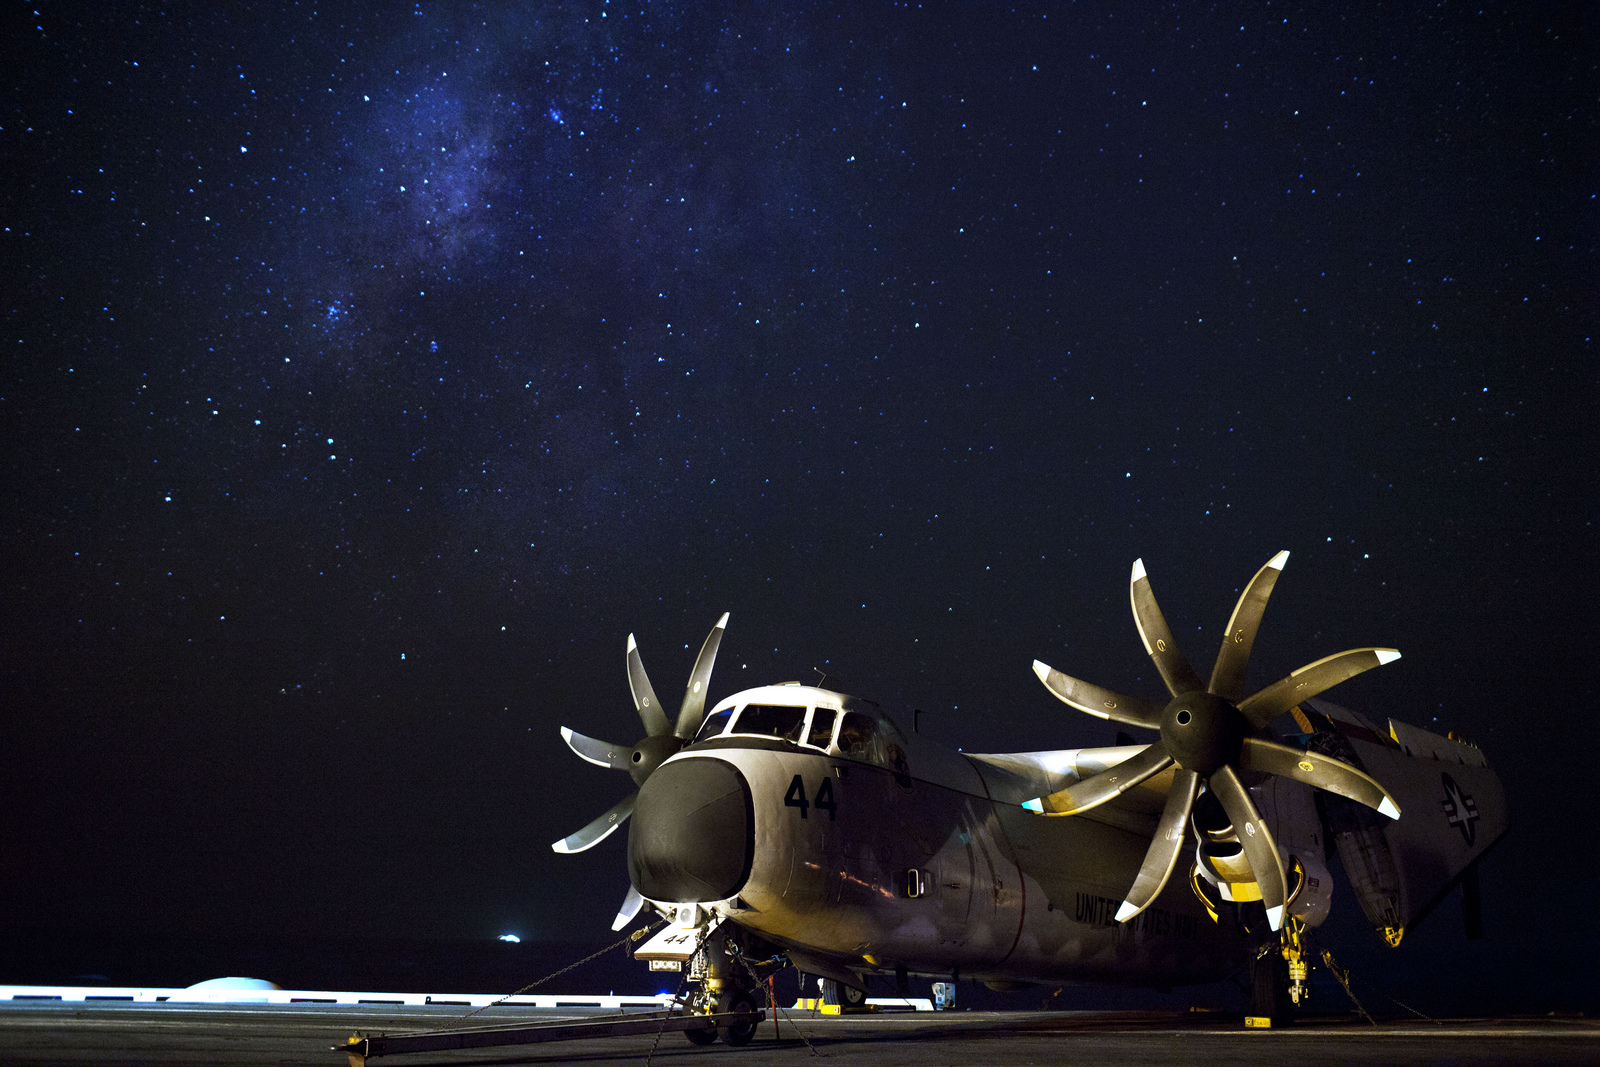 One Of The Most Awesome Pictures Ever Taken On Board USS Enterprise Starry Night Over Gulf Aden